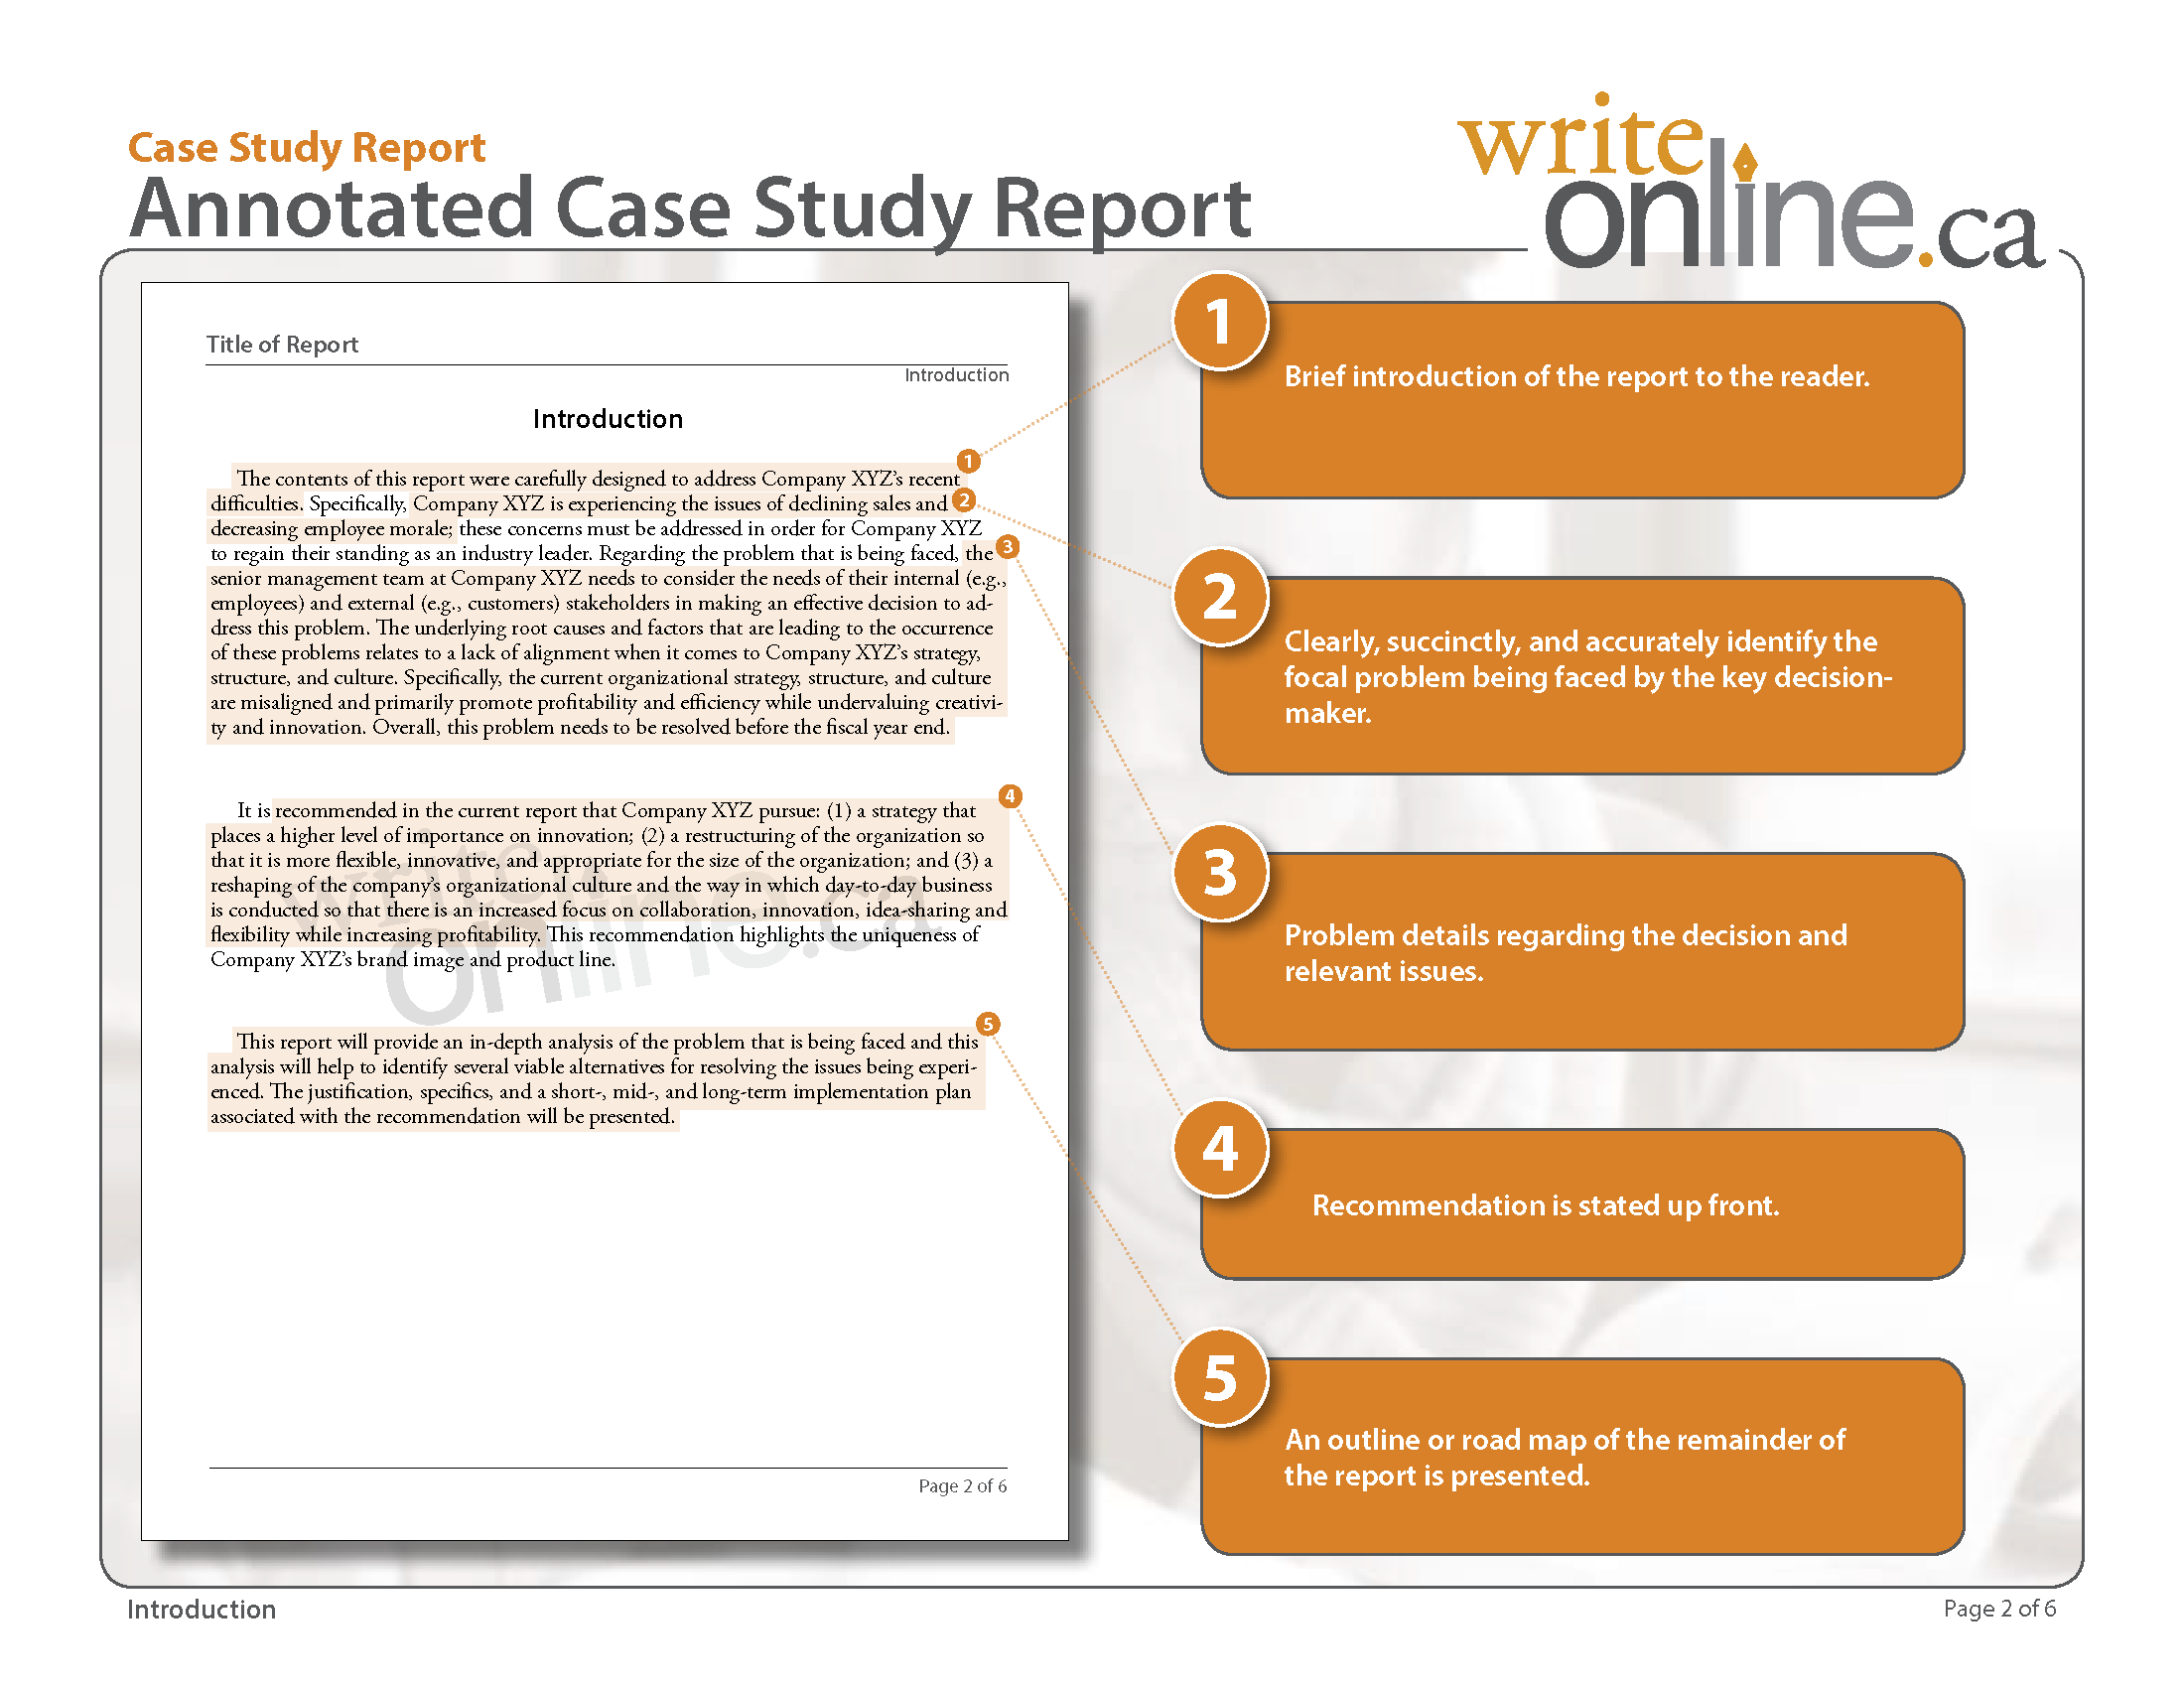 025 Research Paper Casestudy Annotatedfull Page 2 Making Breathtaking A Introduction Full